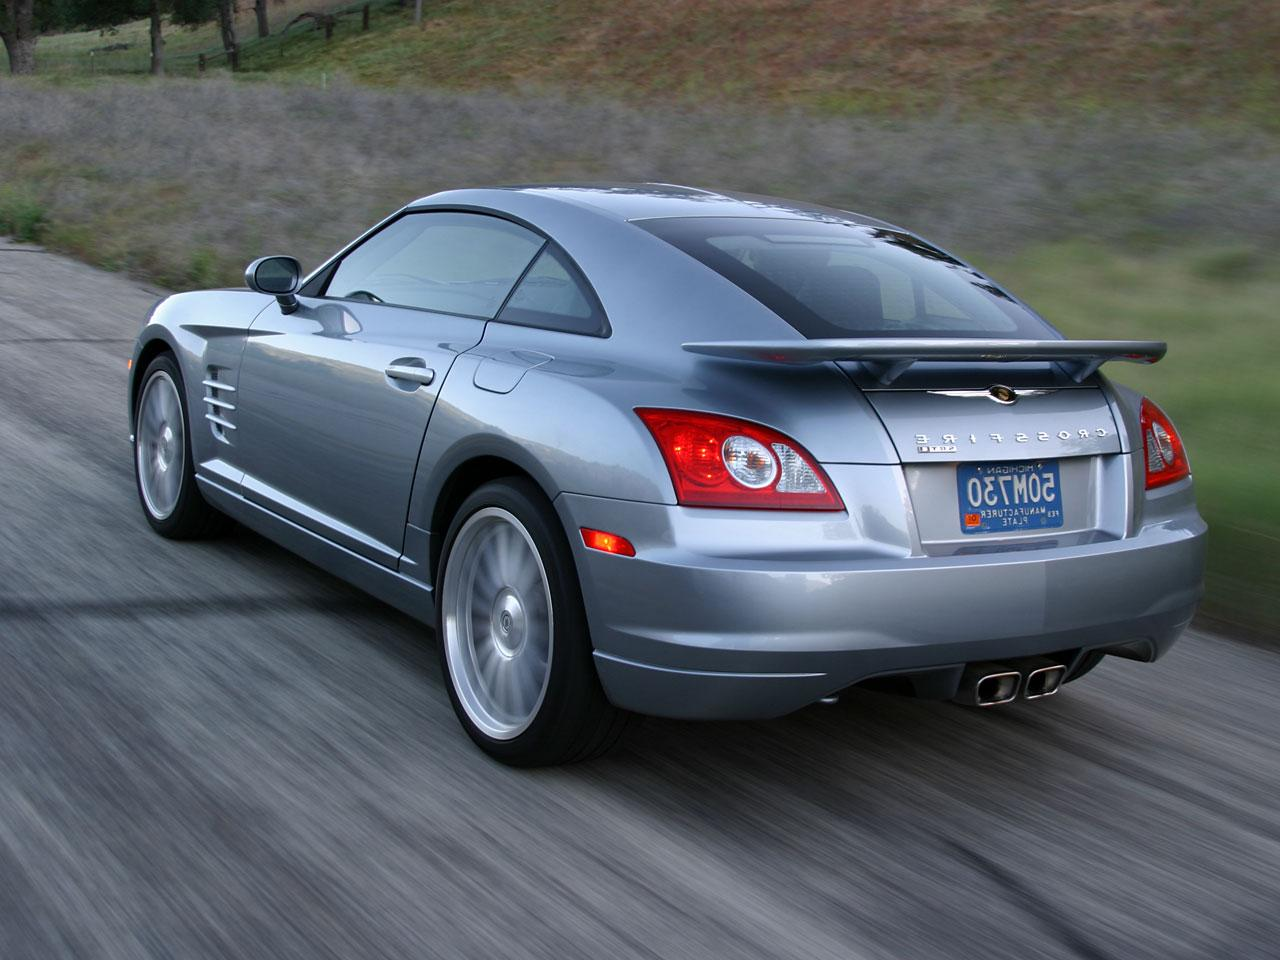 photos of Chrysler Crossfire